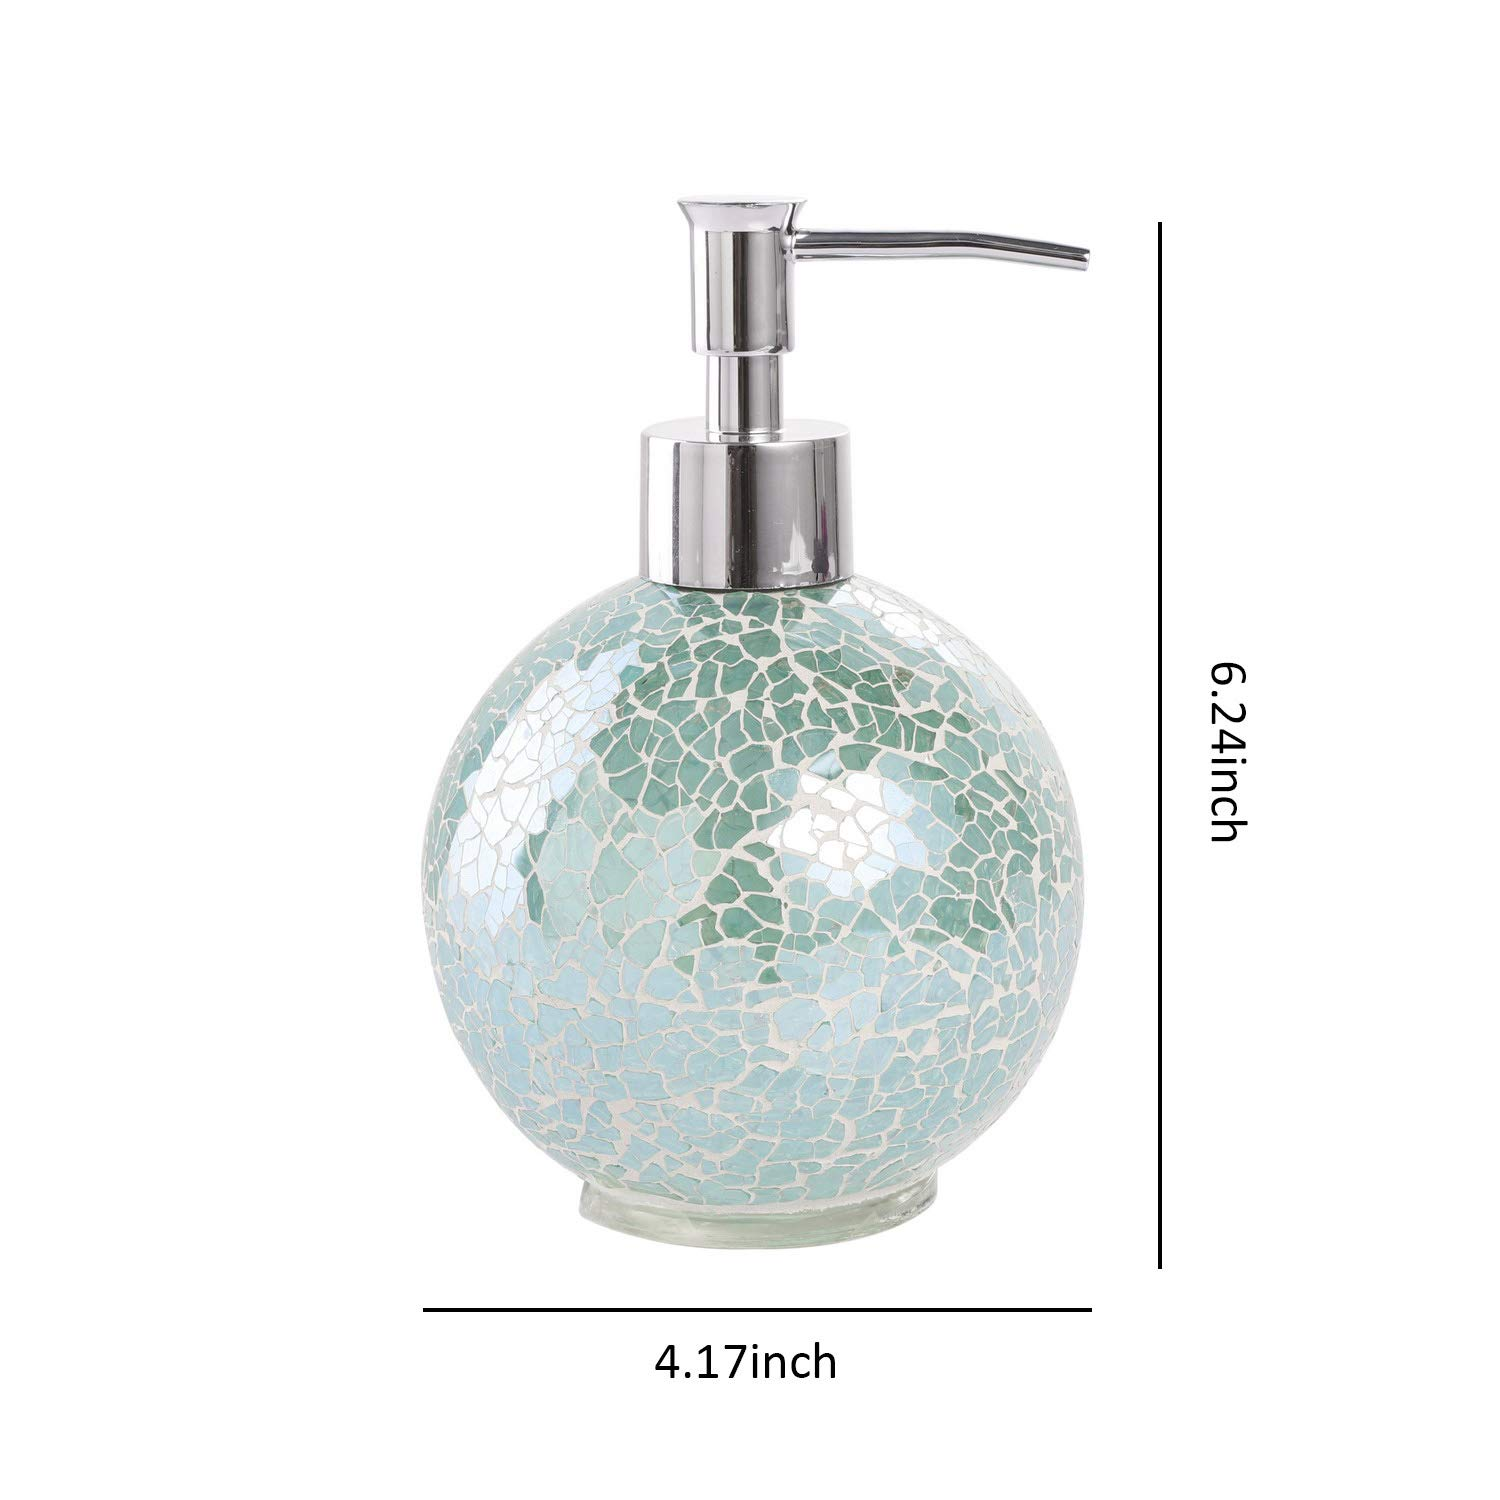 Bathroom Accessories Set 4 Piece Glass Mosaic Bath Accessory Completes With Lotion Dispenser Soap Pump Cotton Jar Vanity Tray Toothbrush Holder Turquoise Walmart Com Walmart Com